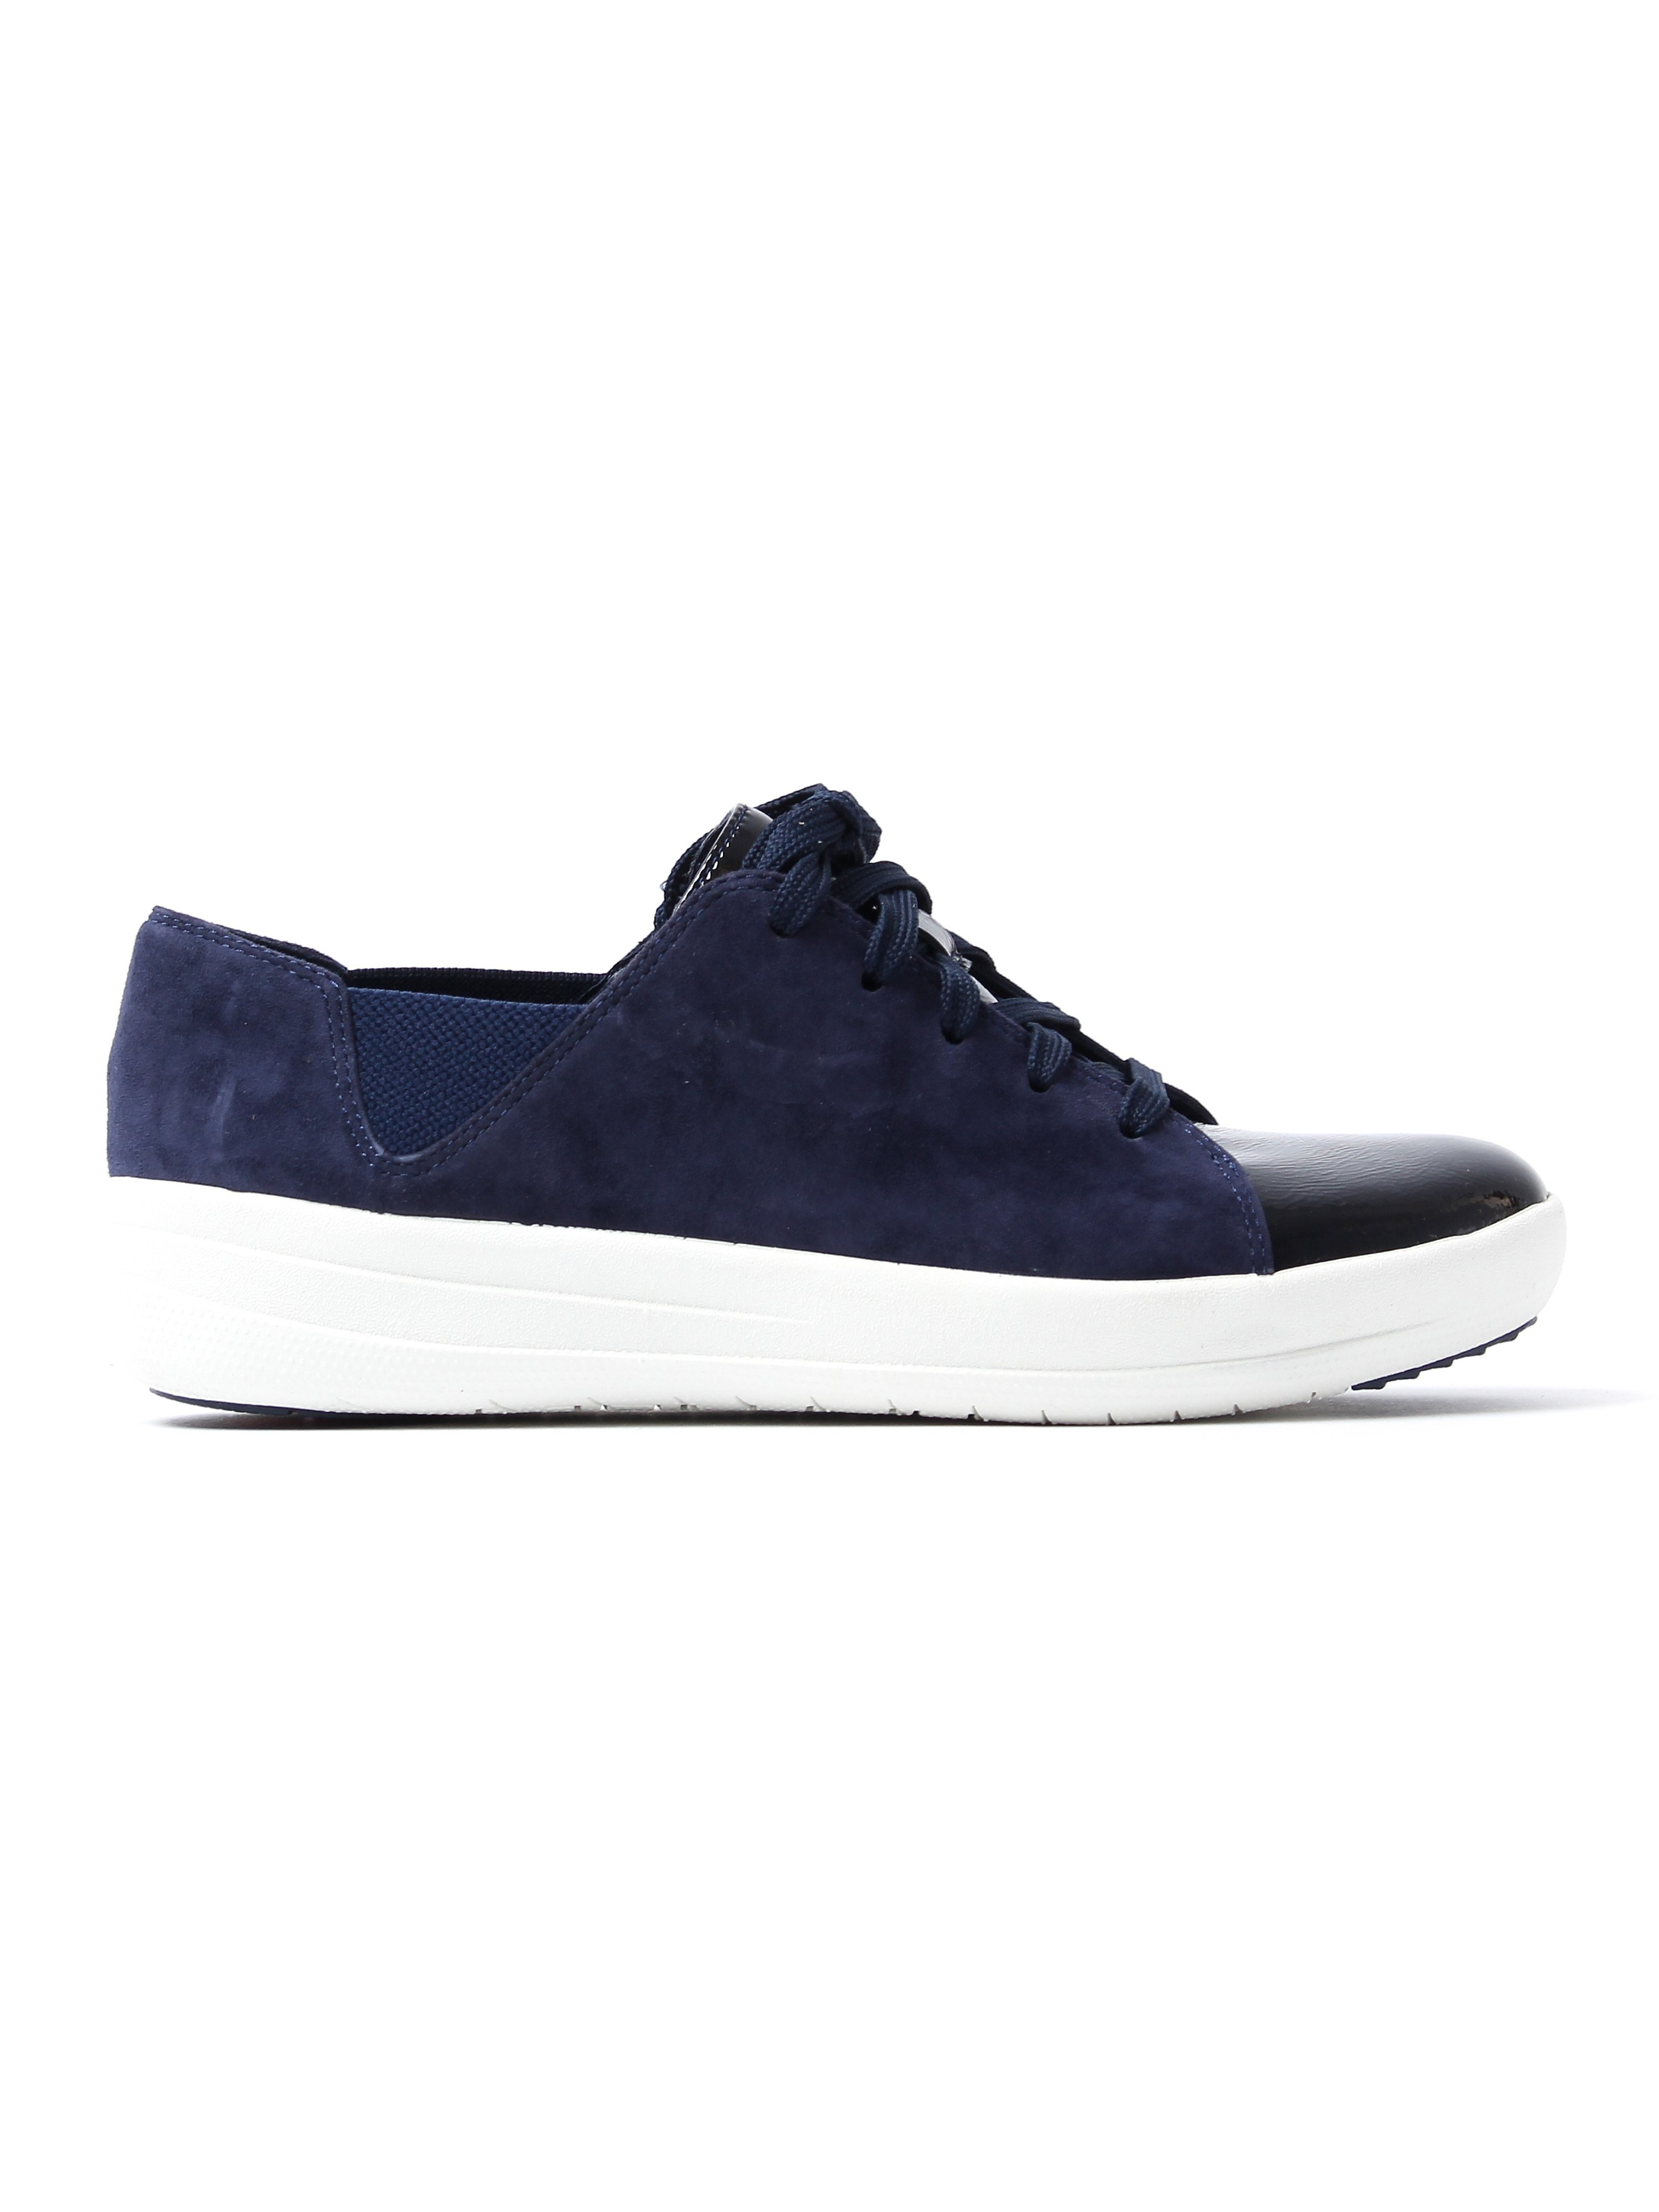 FitFlop Women's F-Sporty Lace Up Trainers - Midnight Navy Suede